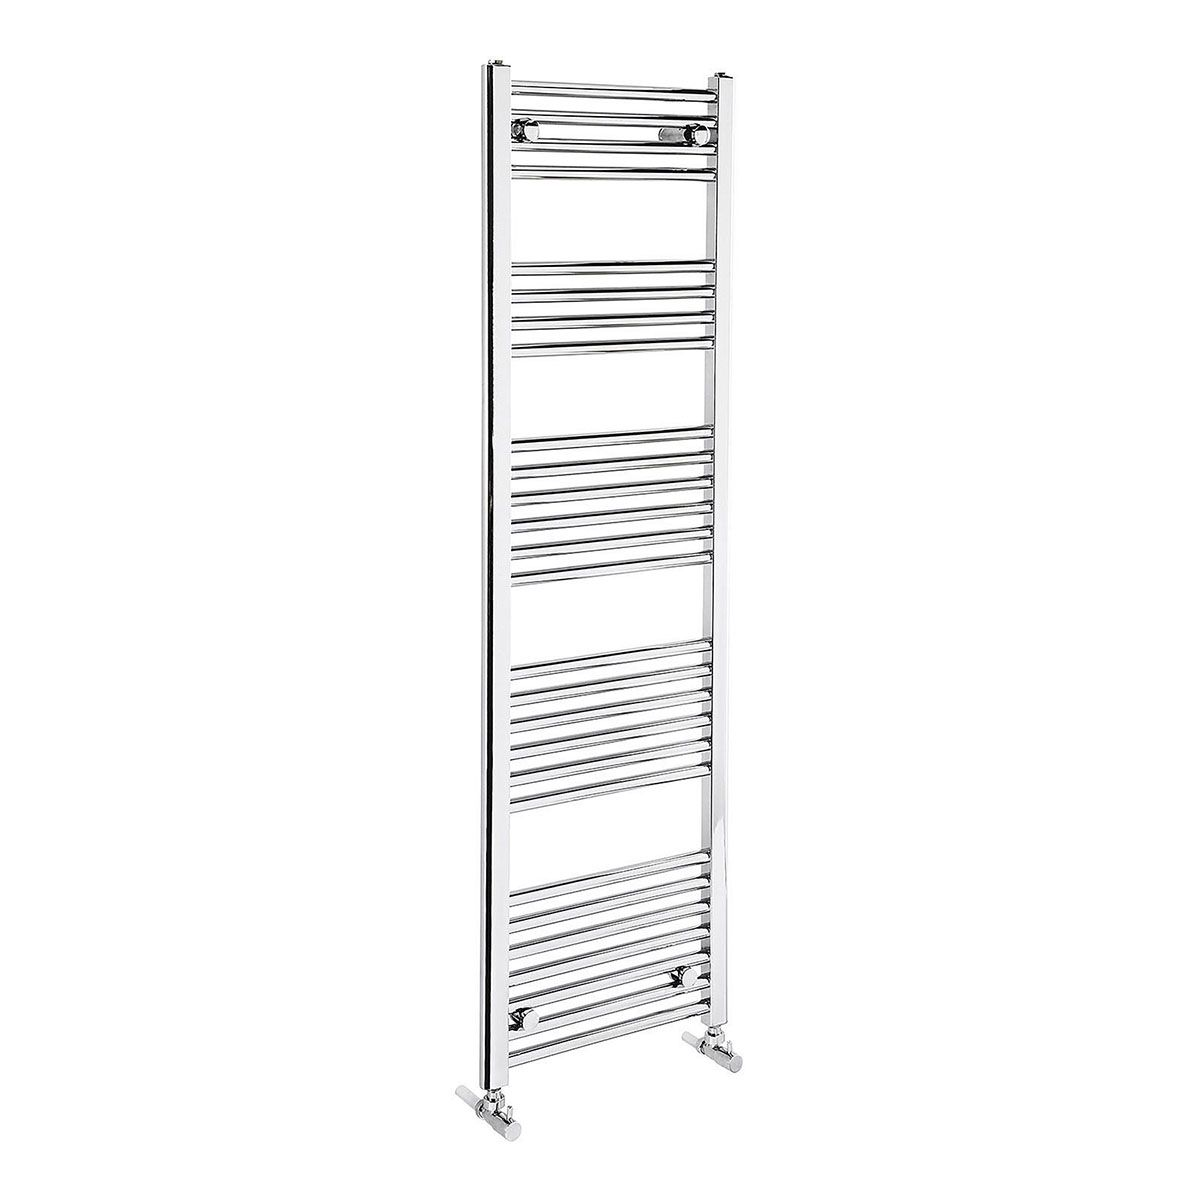 Frontline Flat Chrome Heated Towel Rail With Multiple Hanging Areas W450 H1500